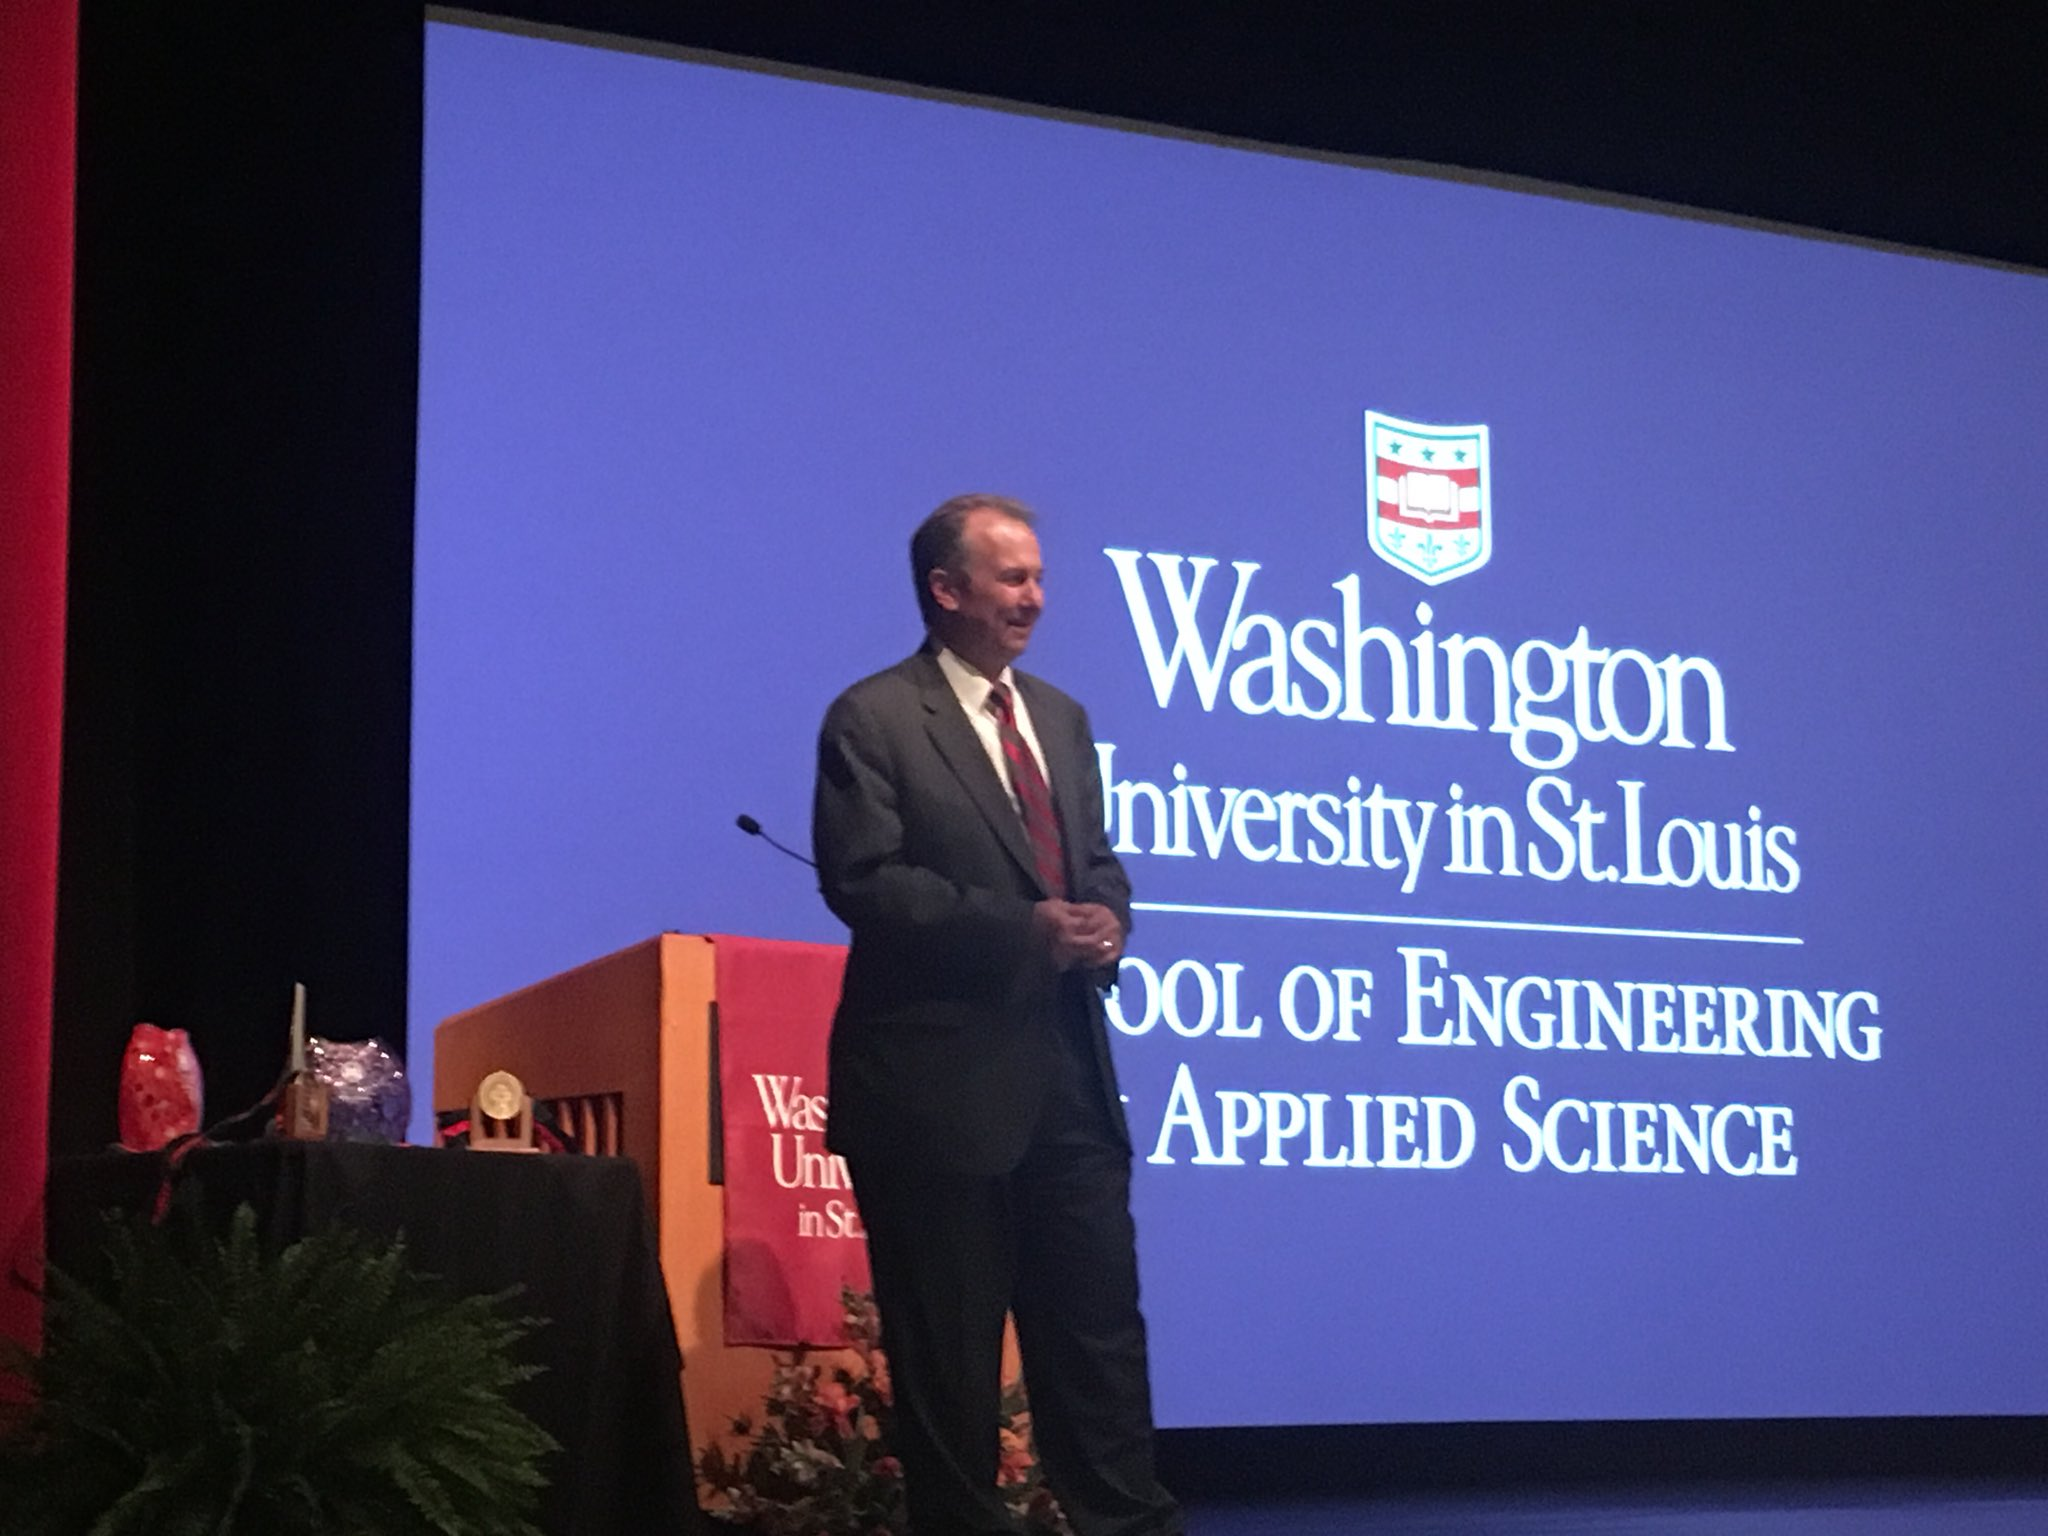 Professor Mark Wrighton On Twitter Dean Aaron Bobick Prepares To Recognize Distinguished Alums Of Engineering And Applied Science